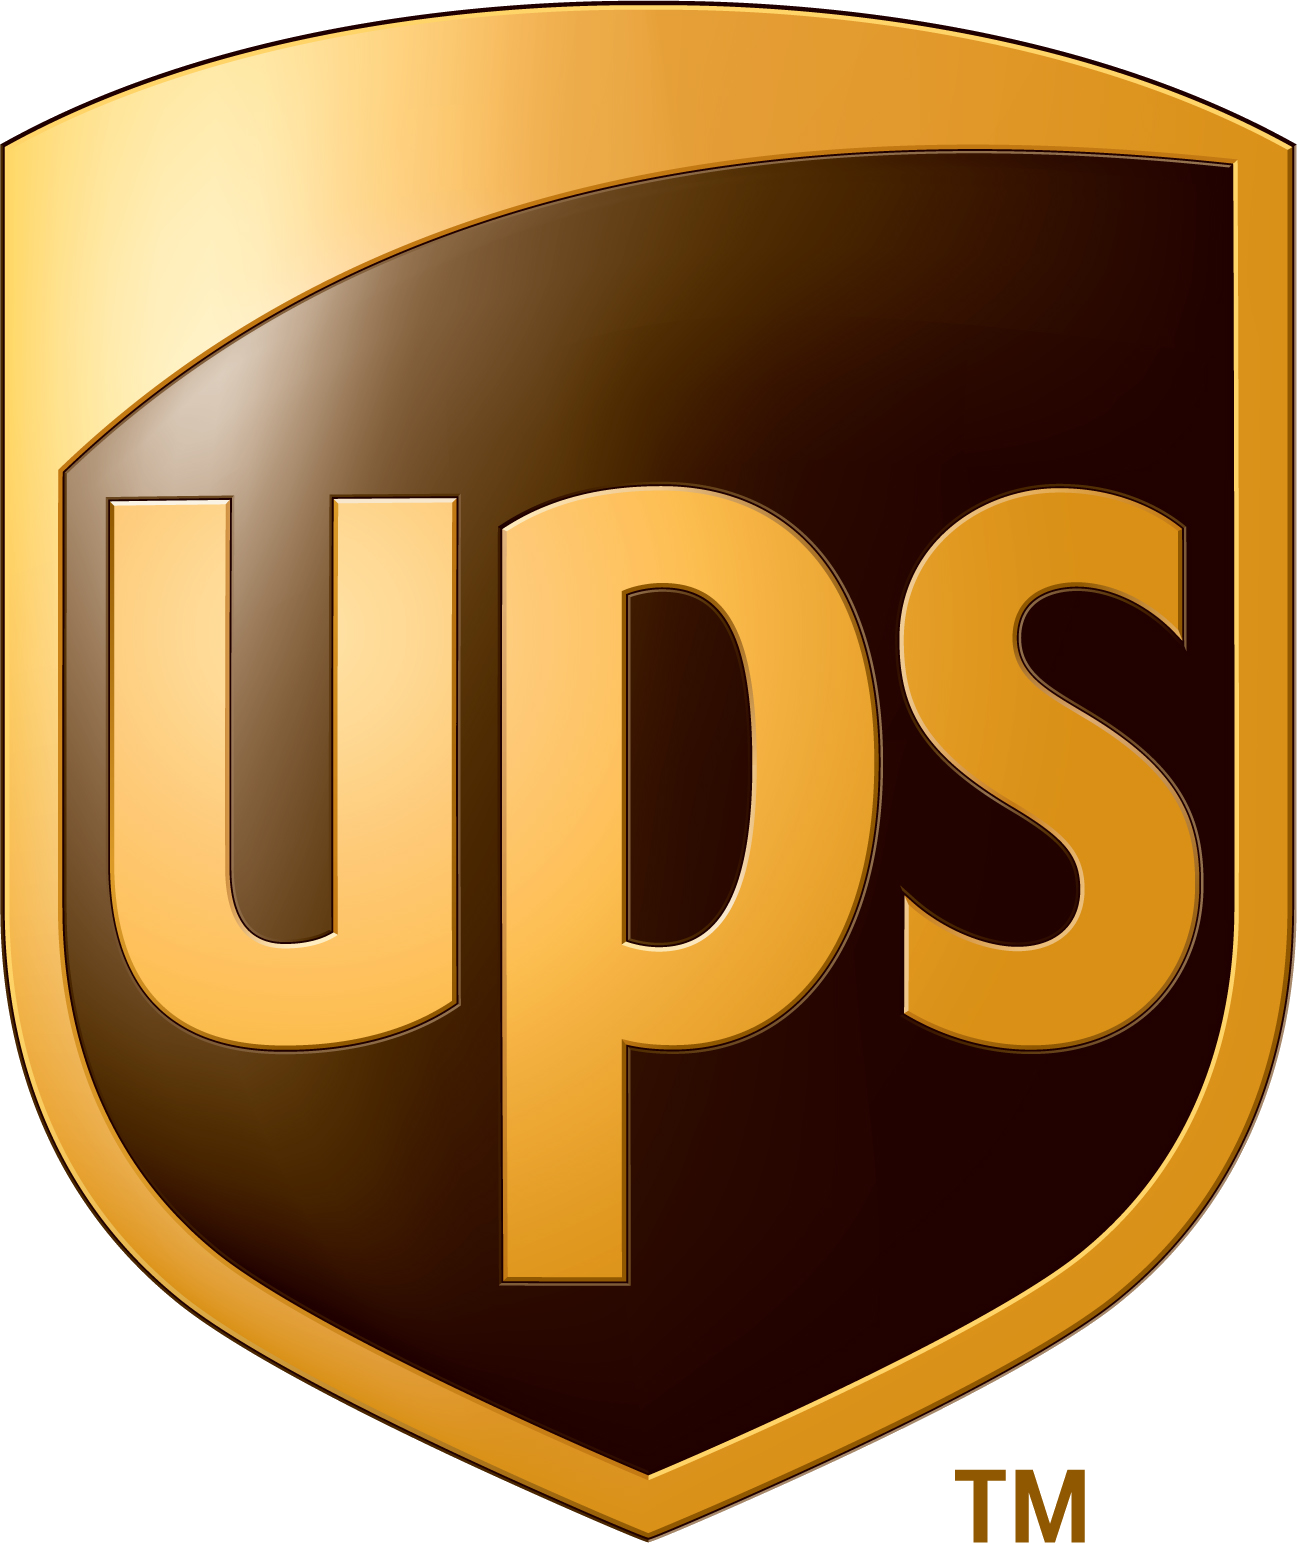 UPS logo with out background - Ikea Logo Eps PNG